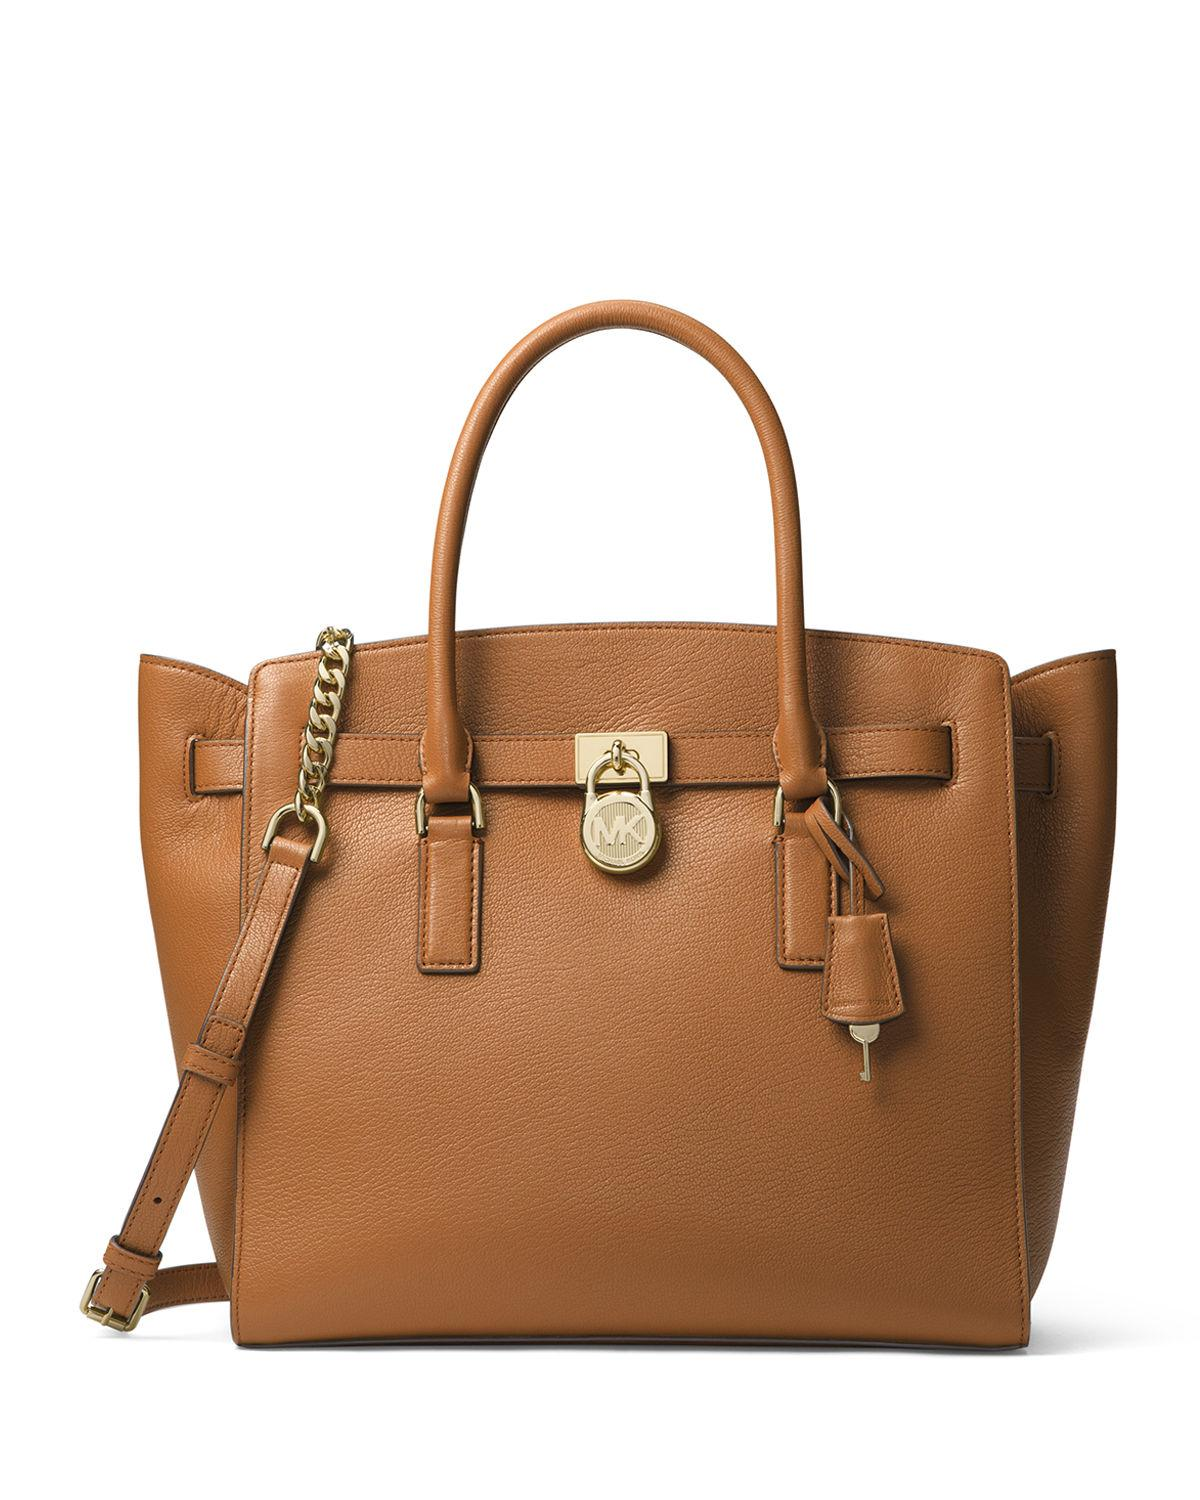 8c6b50537699 Lyst - MICHAEL Michael Kors Hamilton Extra Large Leather Tote Bag in ...